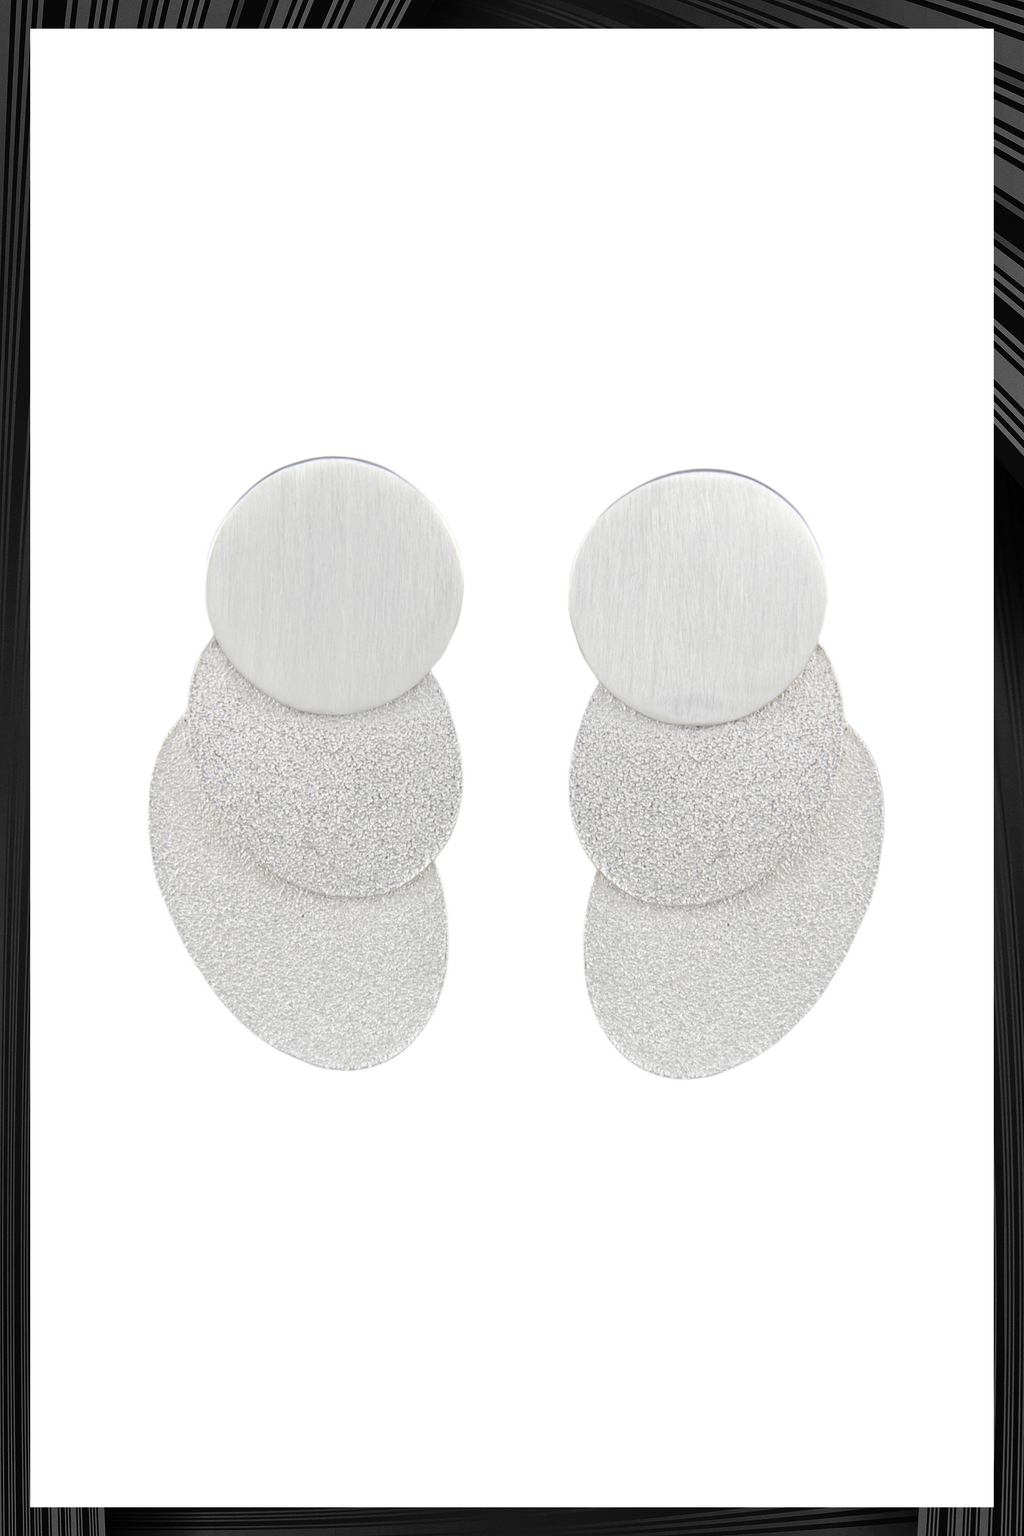 Positano Trio Earrings | Free Delivery - Quick Shipping